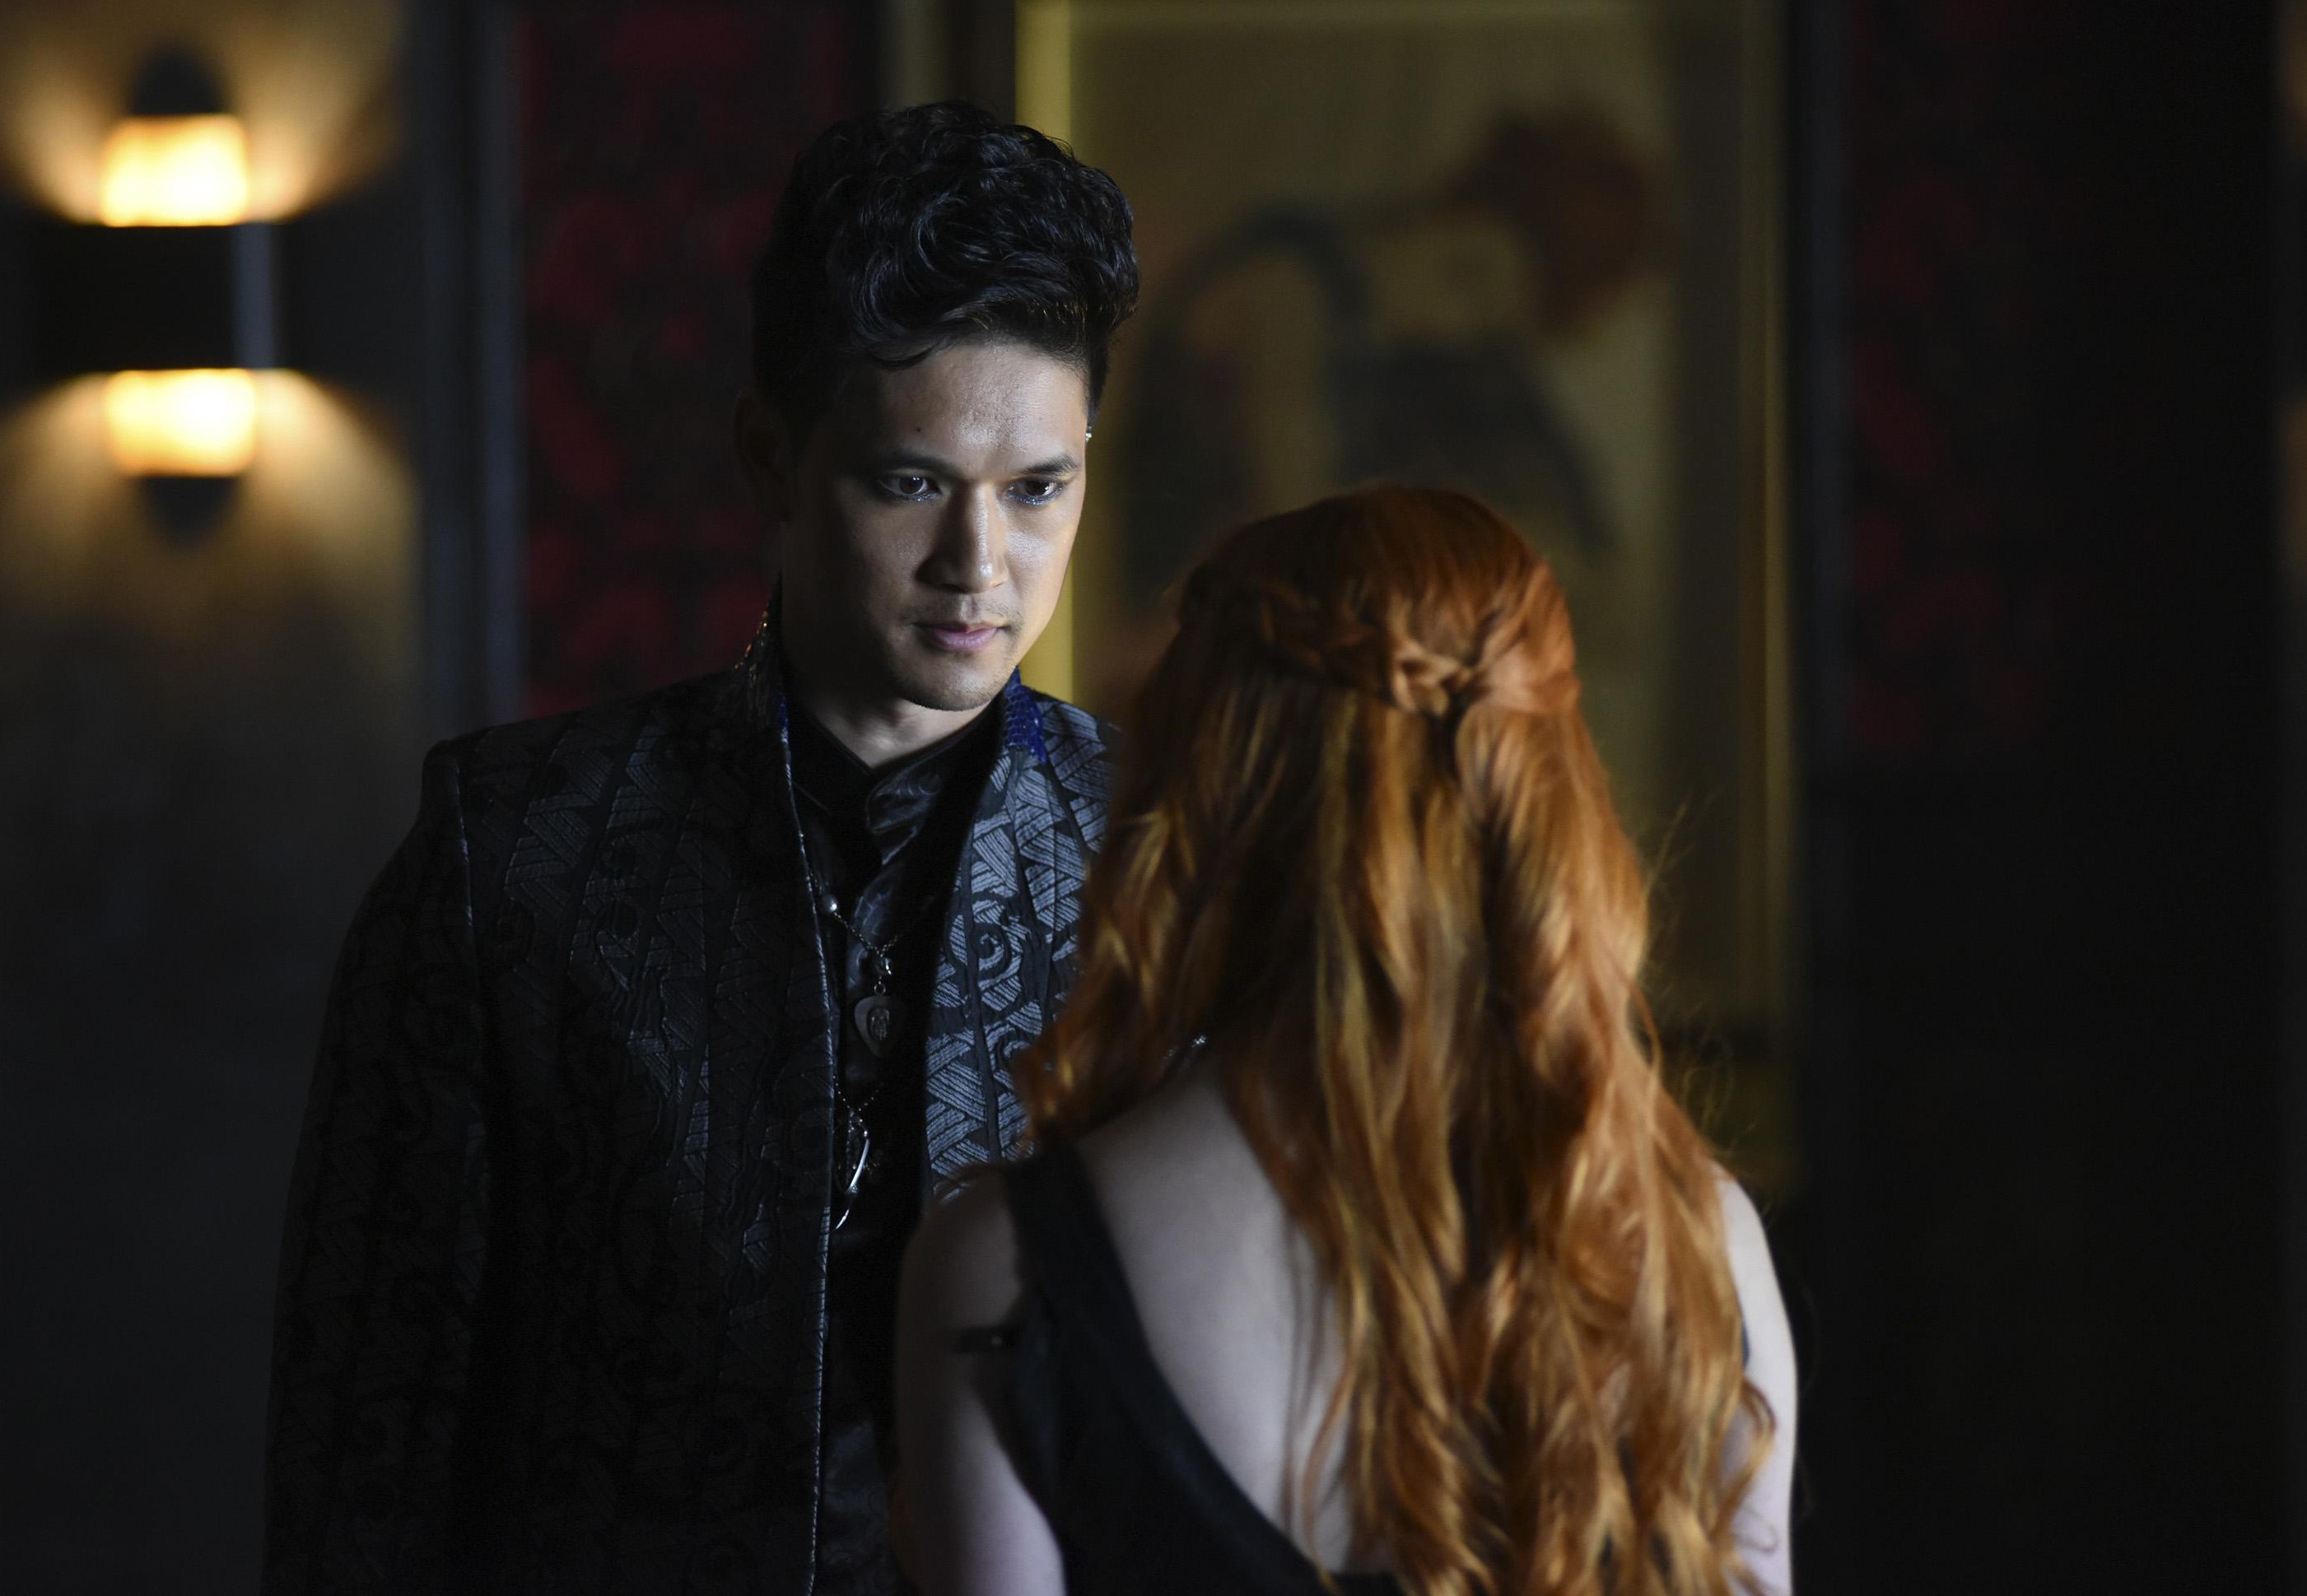 Shadowhunters Season 1, Episode 4 Review | Culturefly